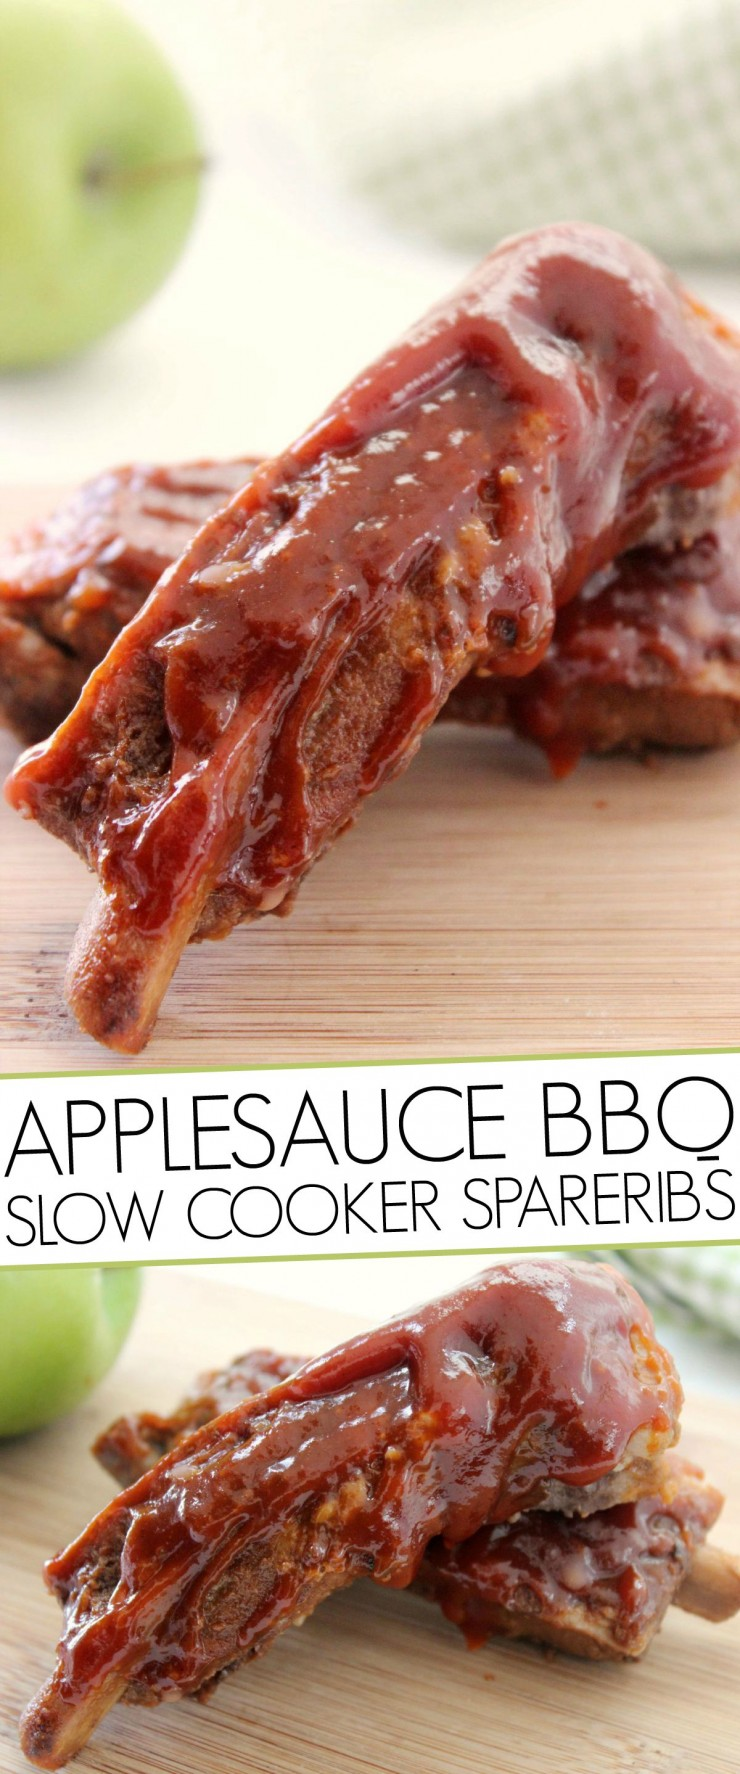 These Applesauce BBQ Slow Cooker Spareribs are going to blow you away. Finger-licking good, tender ribs cooked to perfection in your crock pot with amazing barbecue flavor!